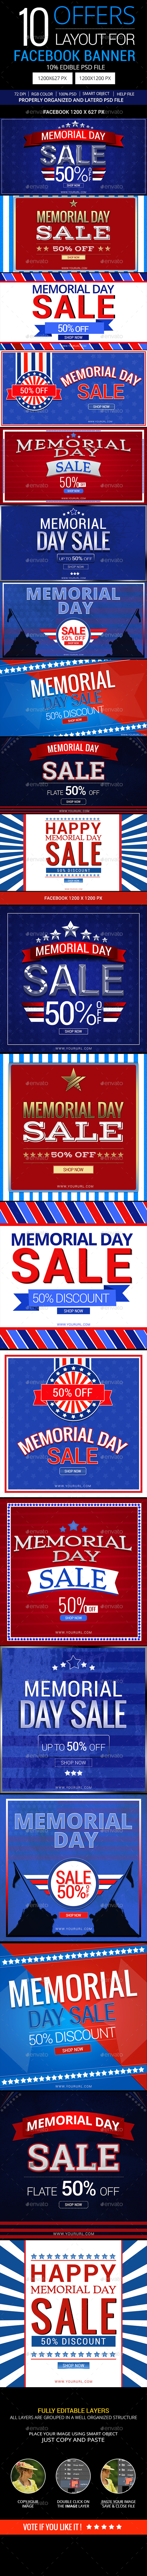 Memorial Day Facebook Promotion Banners - Social Media Web Elements